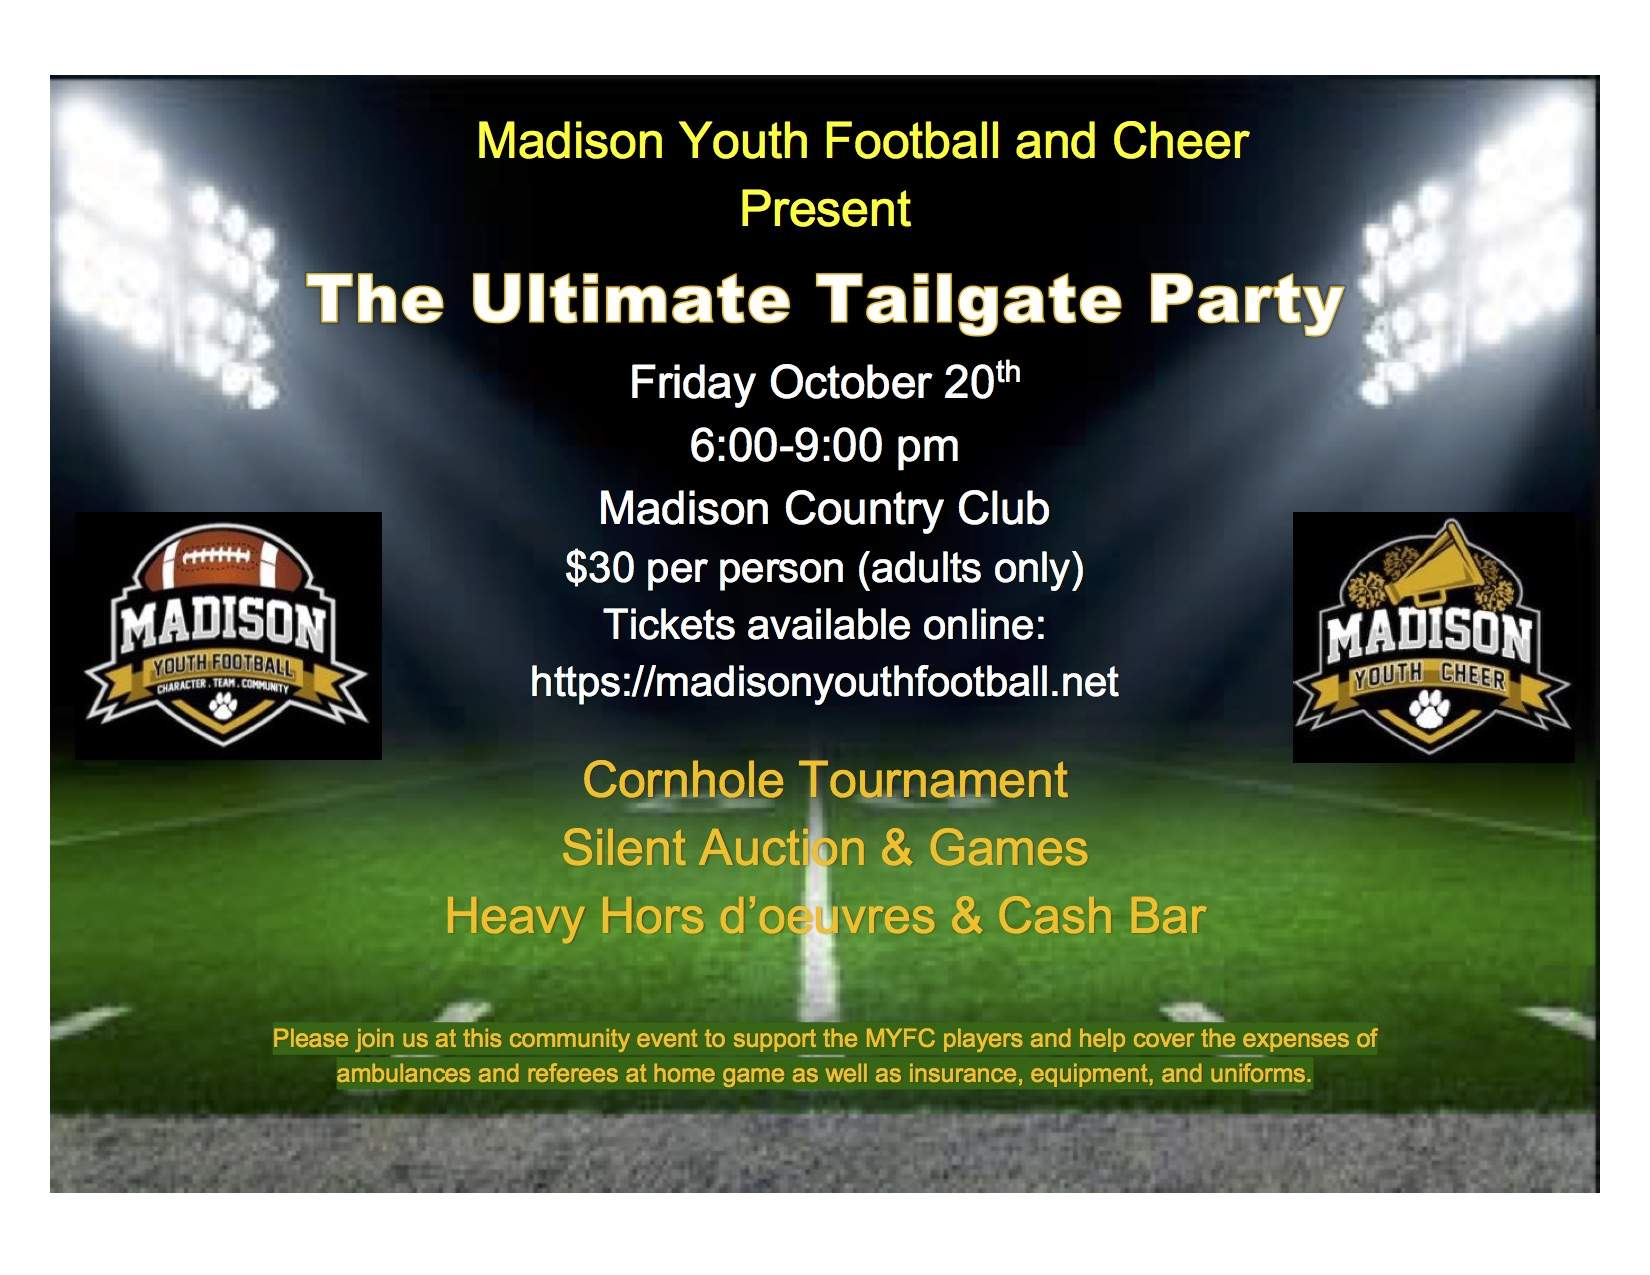 Madison Youth Football and Cheer Present The Ultimate Tailgate Party (Fundraiser)